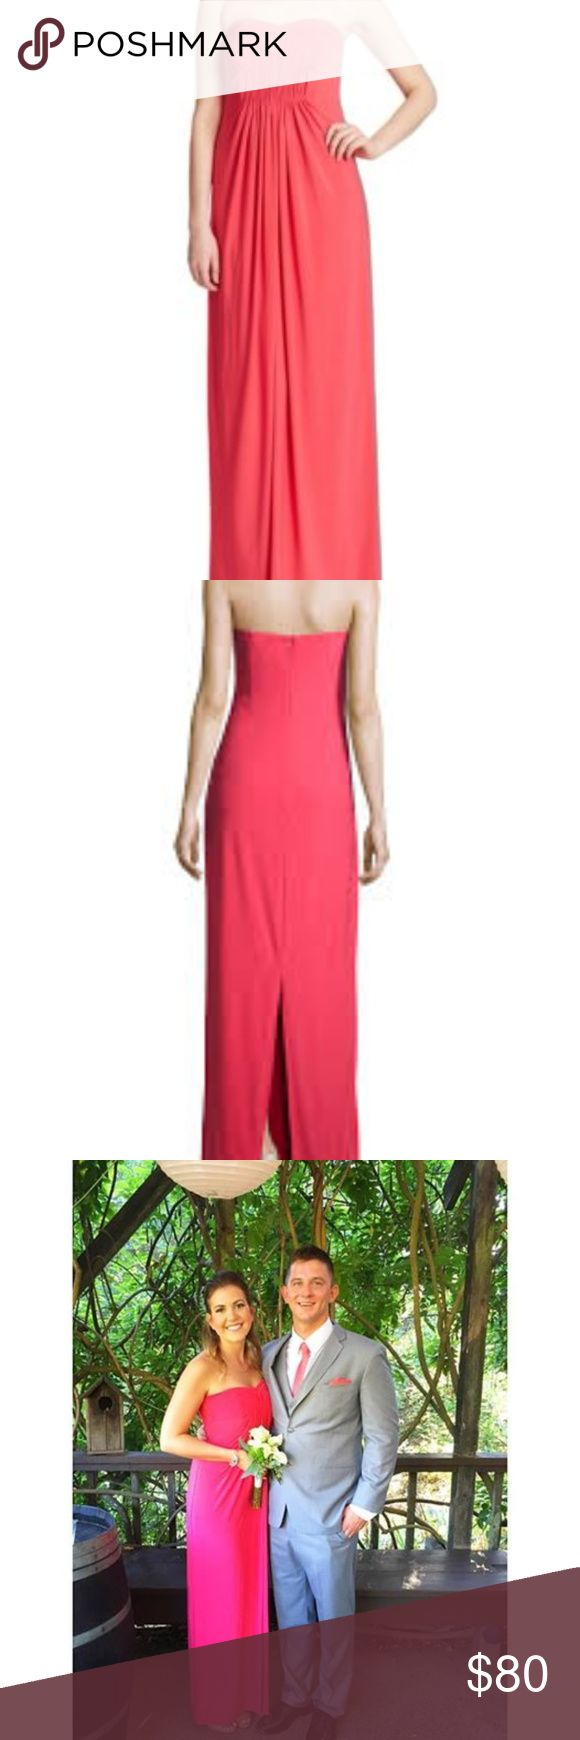 Coral Shelli Segal Strapless Gown Laundry by Shelli Segal Strapless Gown in coral - worn ONCE in a wedding, has been dry cleaned!   Hidden back zip. Back center slit. Polyester/spandex. Laundry by Shelli Segal Dresses Wedding